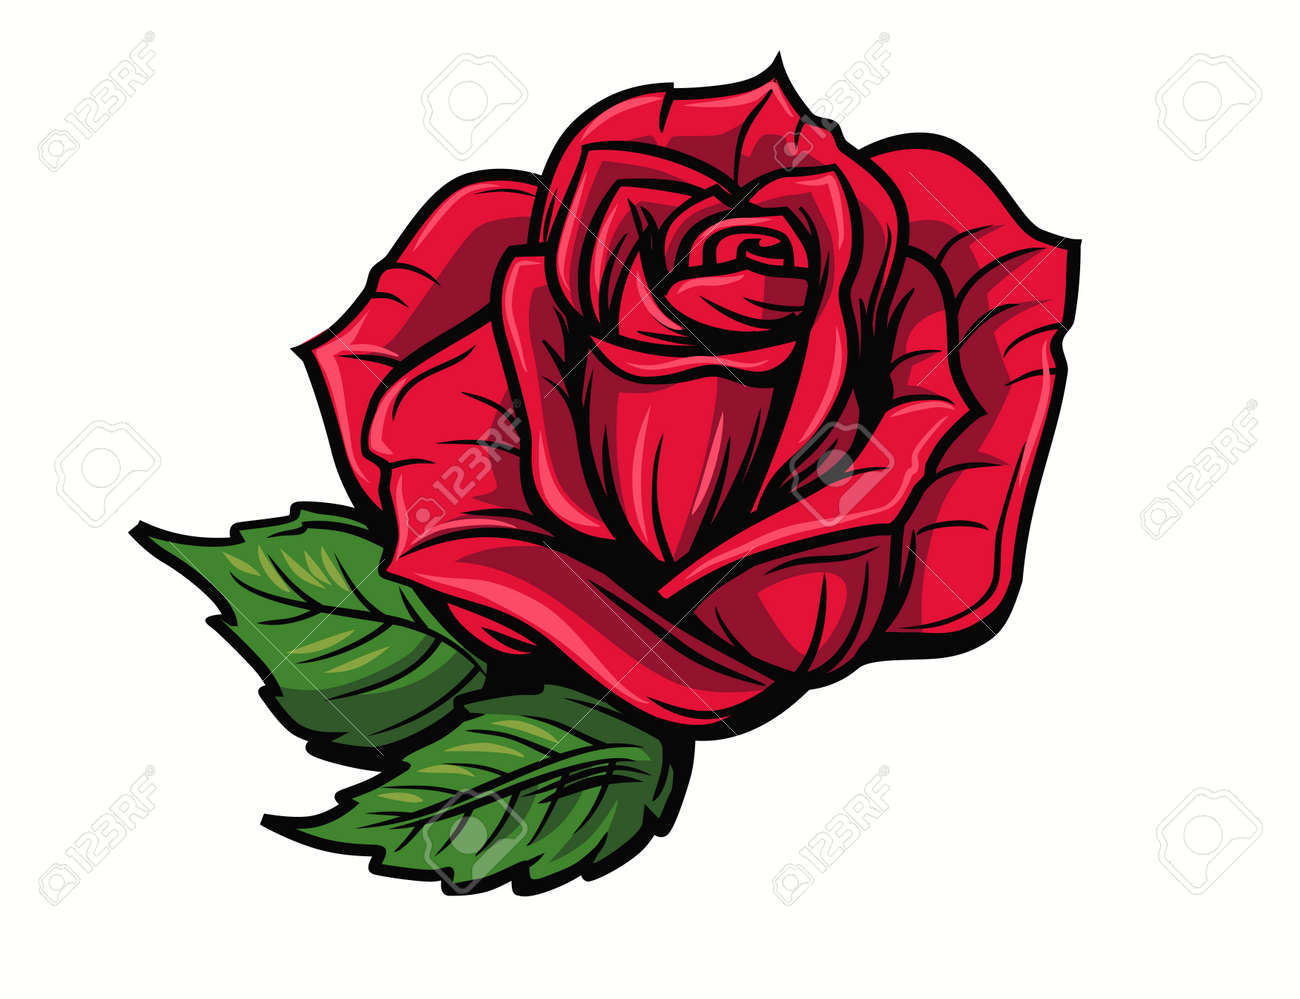 Red Rose Cartoon Style On White Background Royalty Free Cliparts Vectors And Stock Illustration Image 64172720